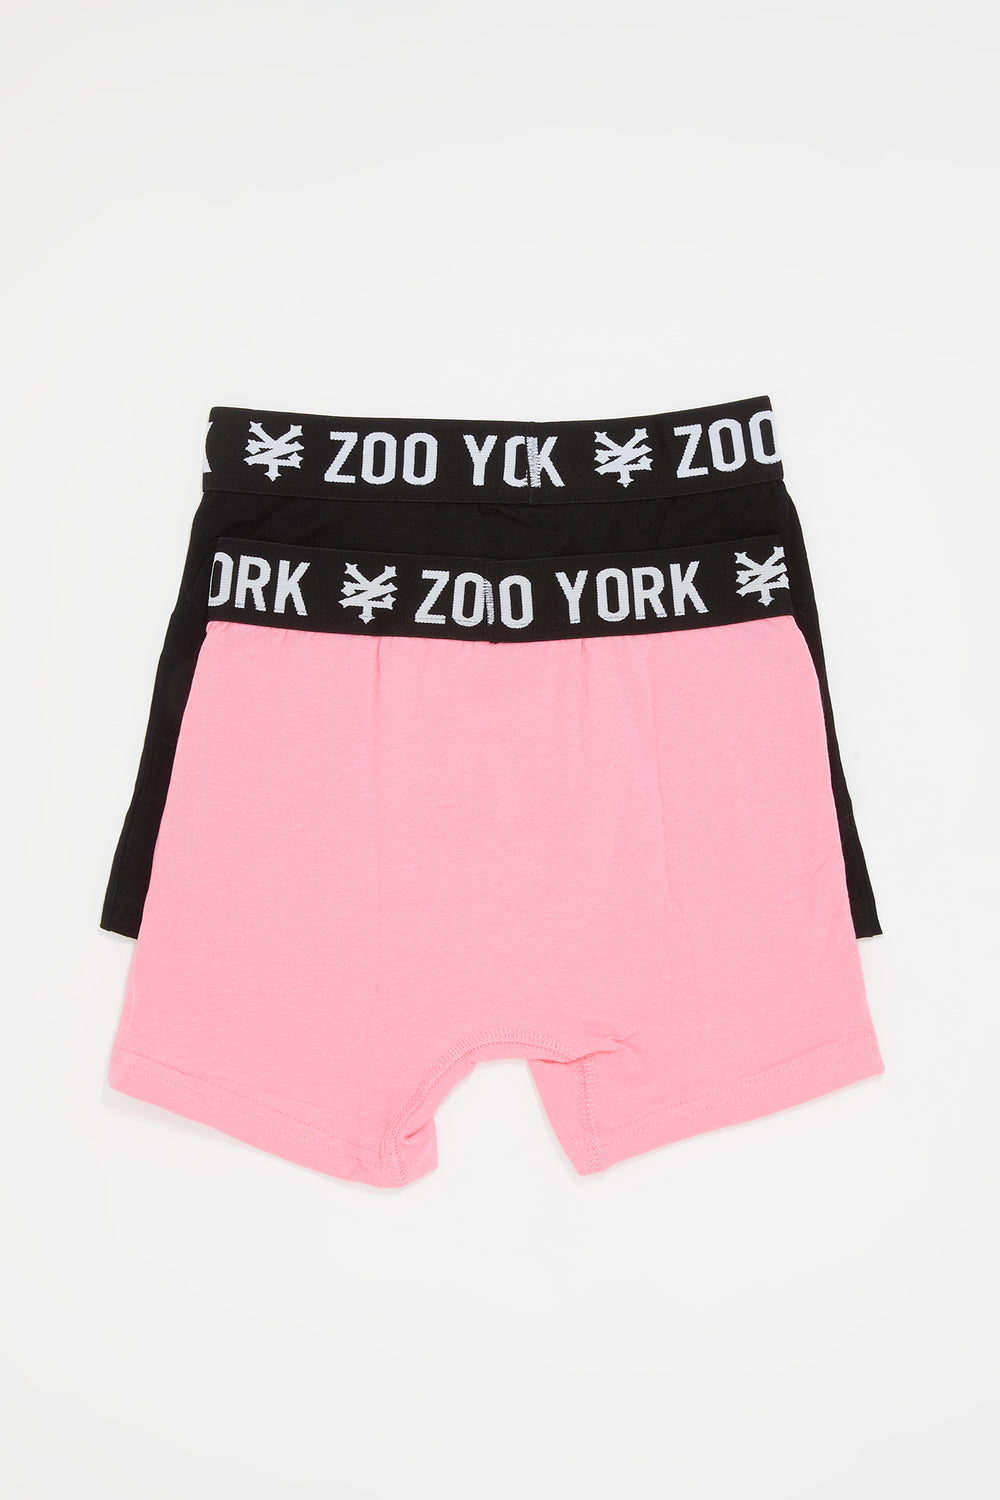 Zoo York Boys 2-Pack Cotton Boxer Briefs Pink